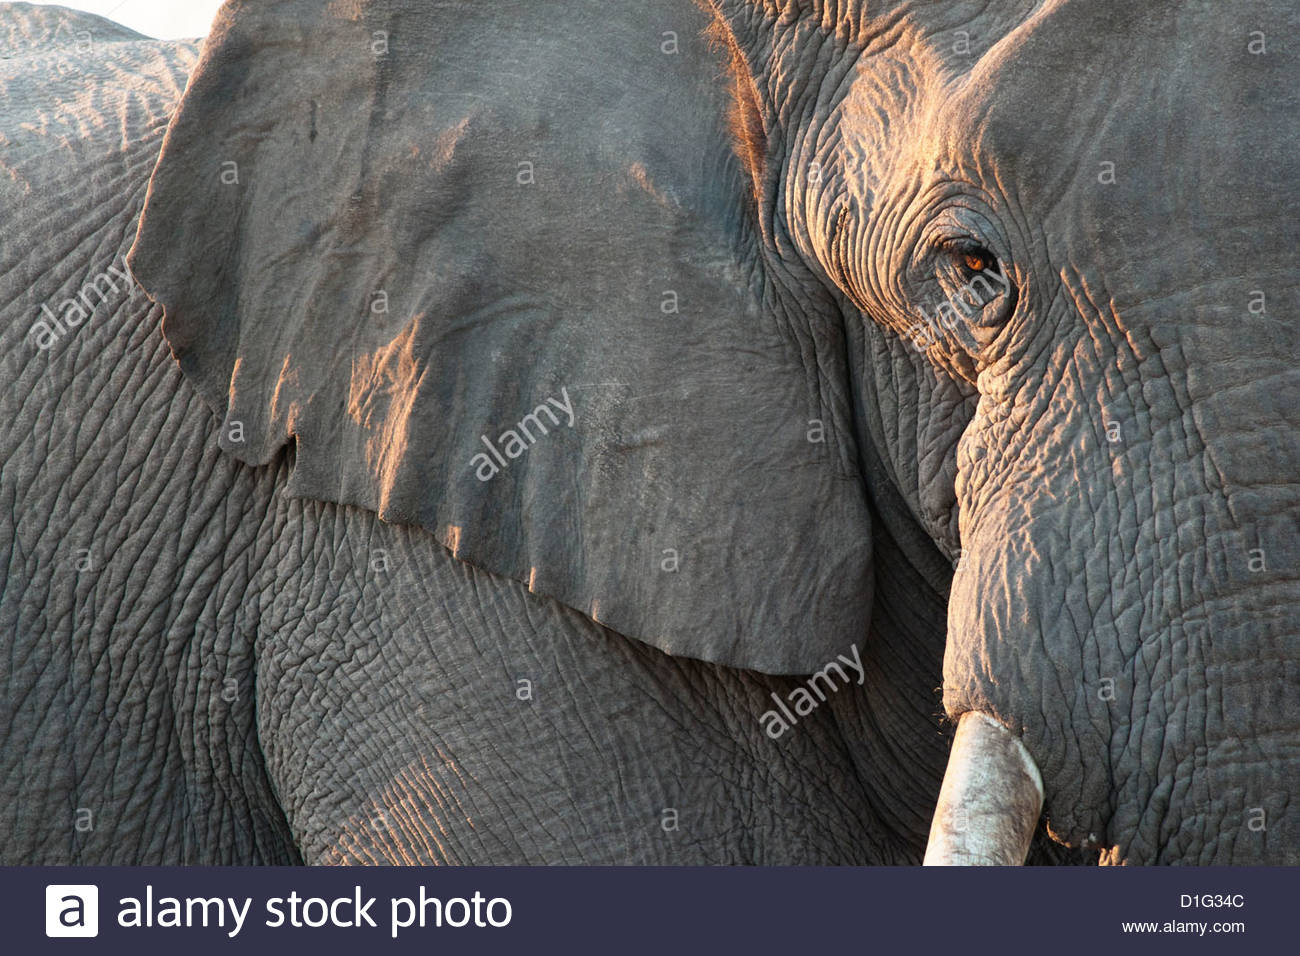 Close up of partial face, African elephant (Loxodonta africana), Etosha National Park, Namibia, Africa - Stock Image